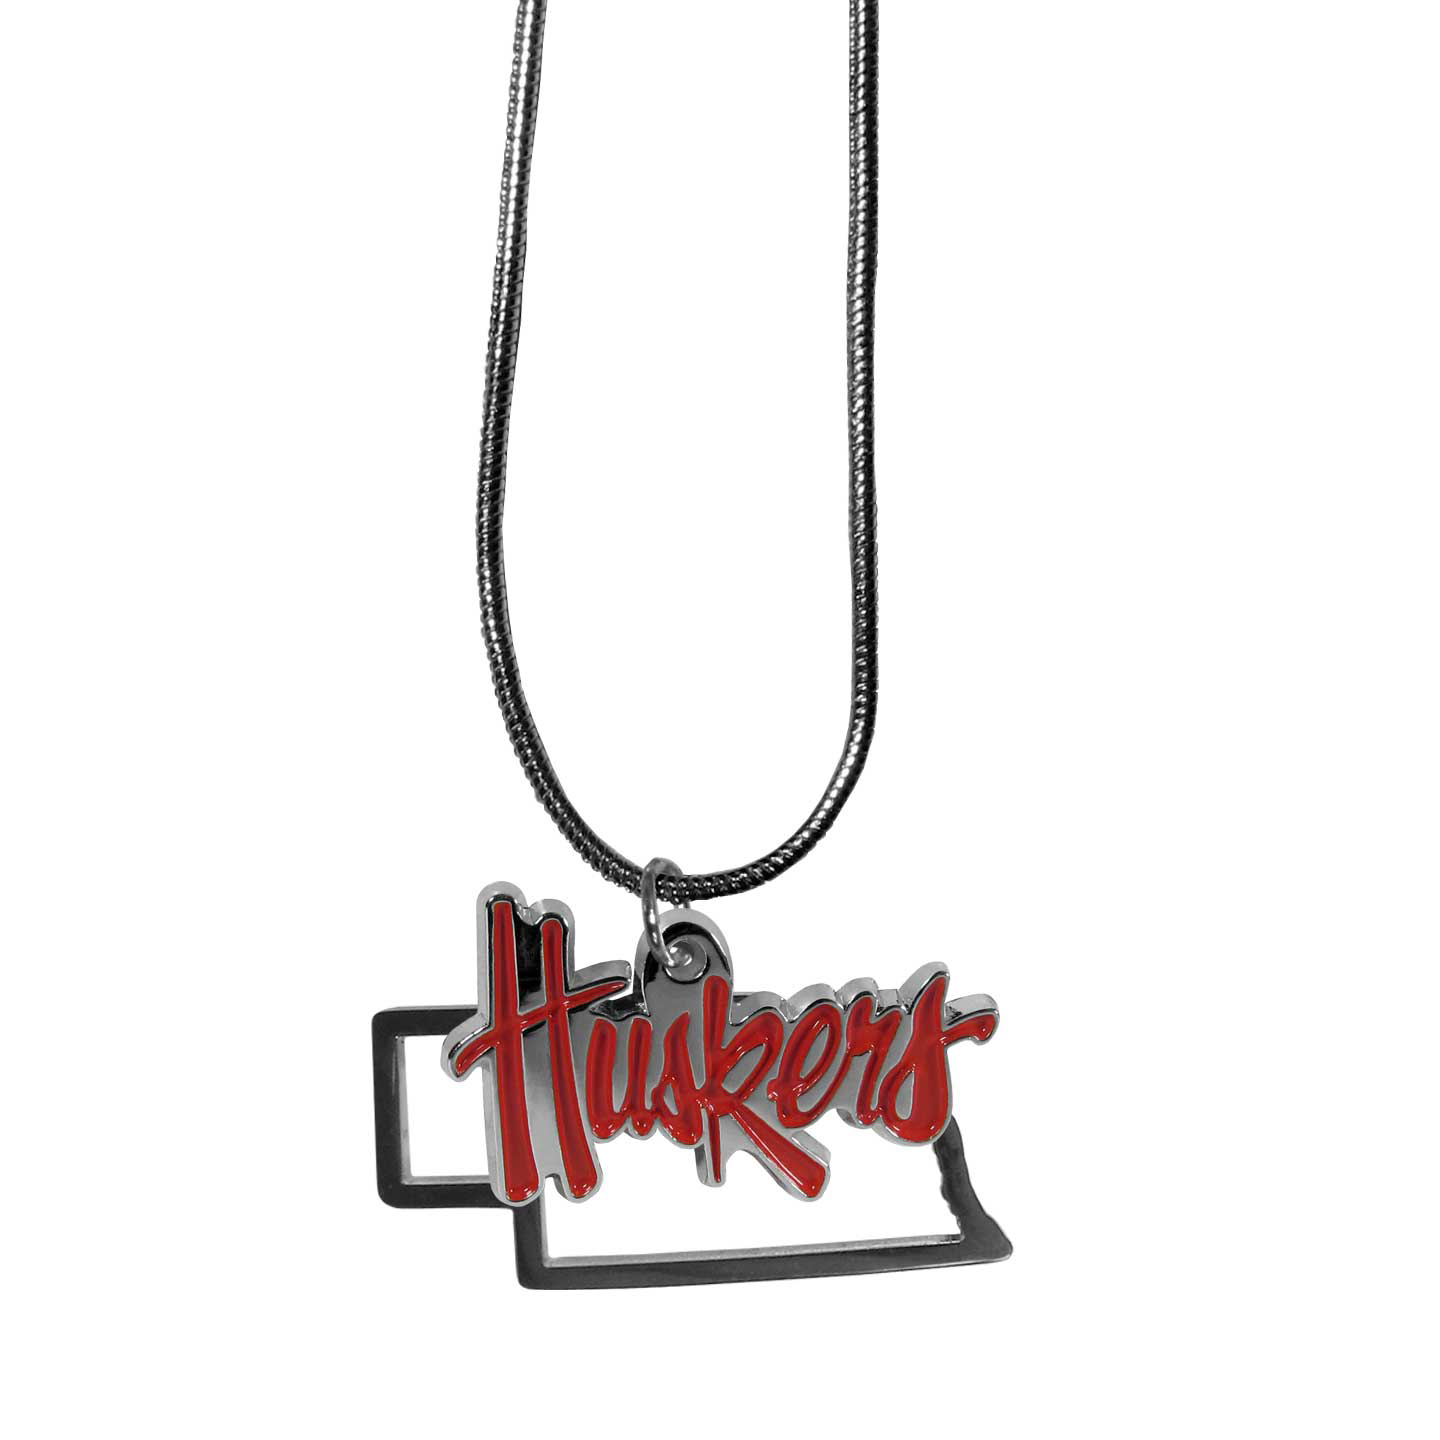 Nebraska Cornhuskers State Charm Necklace - Get in on the trend! State themes are a trend that just keeps getting more popular and these necklaces take the state style and give it a sporty twist with a Nebraska Cornhuskers added to the state outline charm. The come on a snake chain that is 22 inches long.